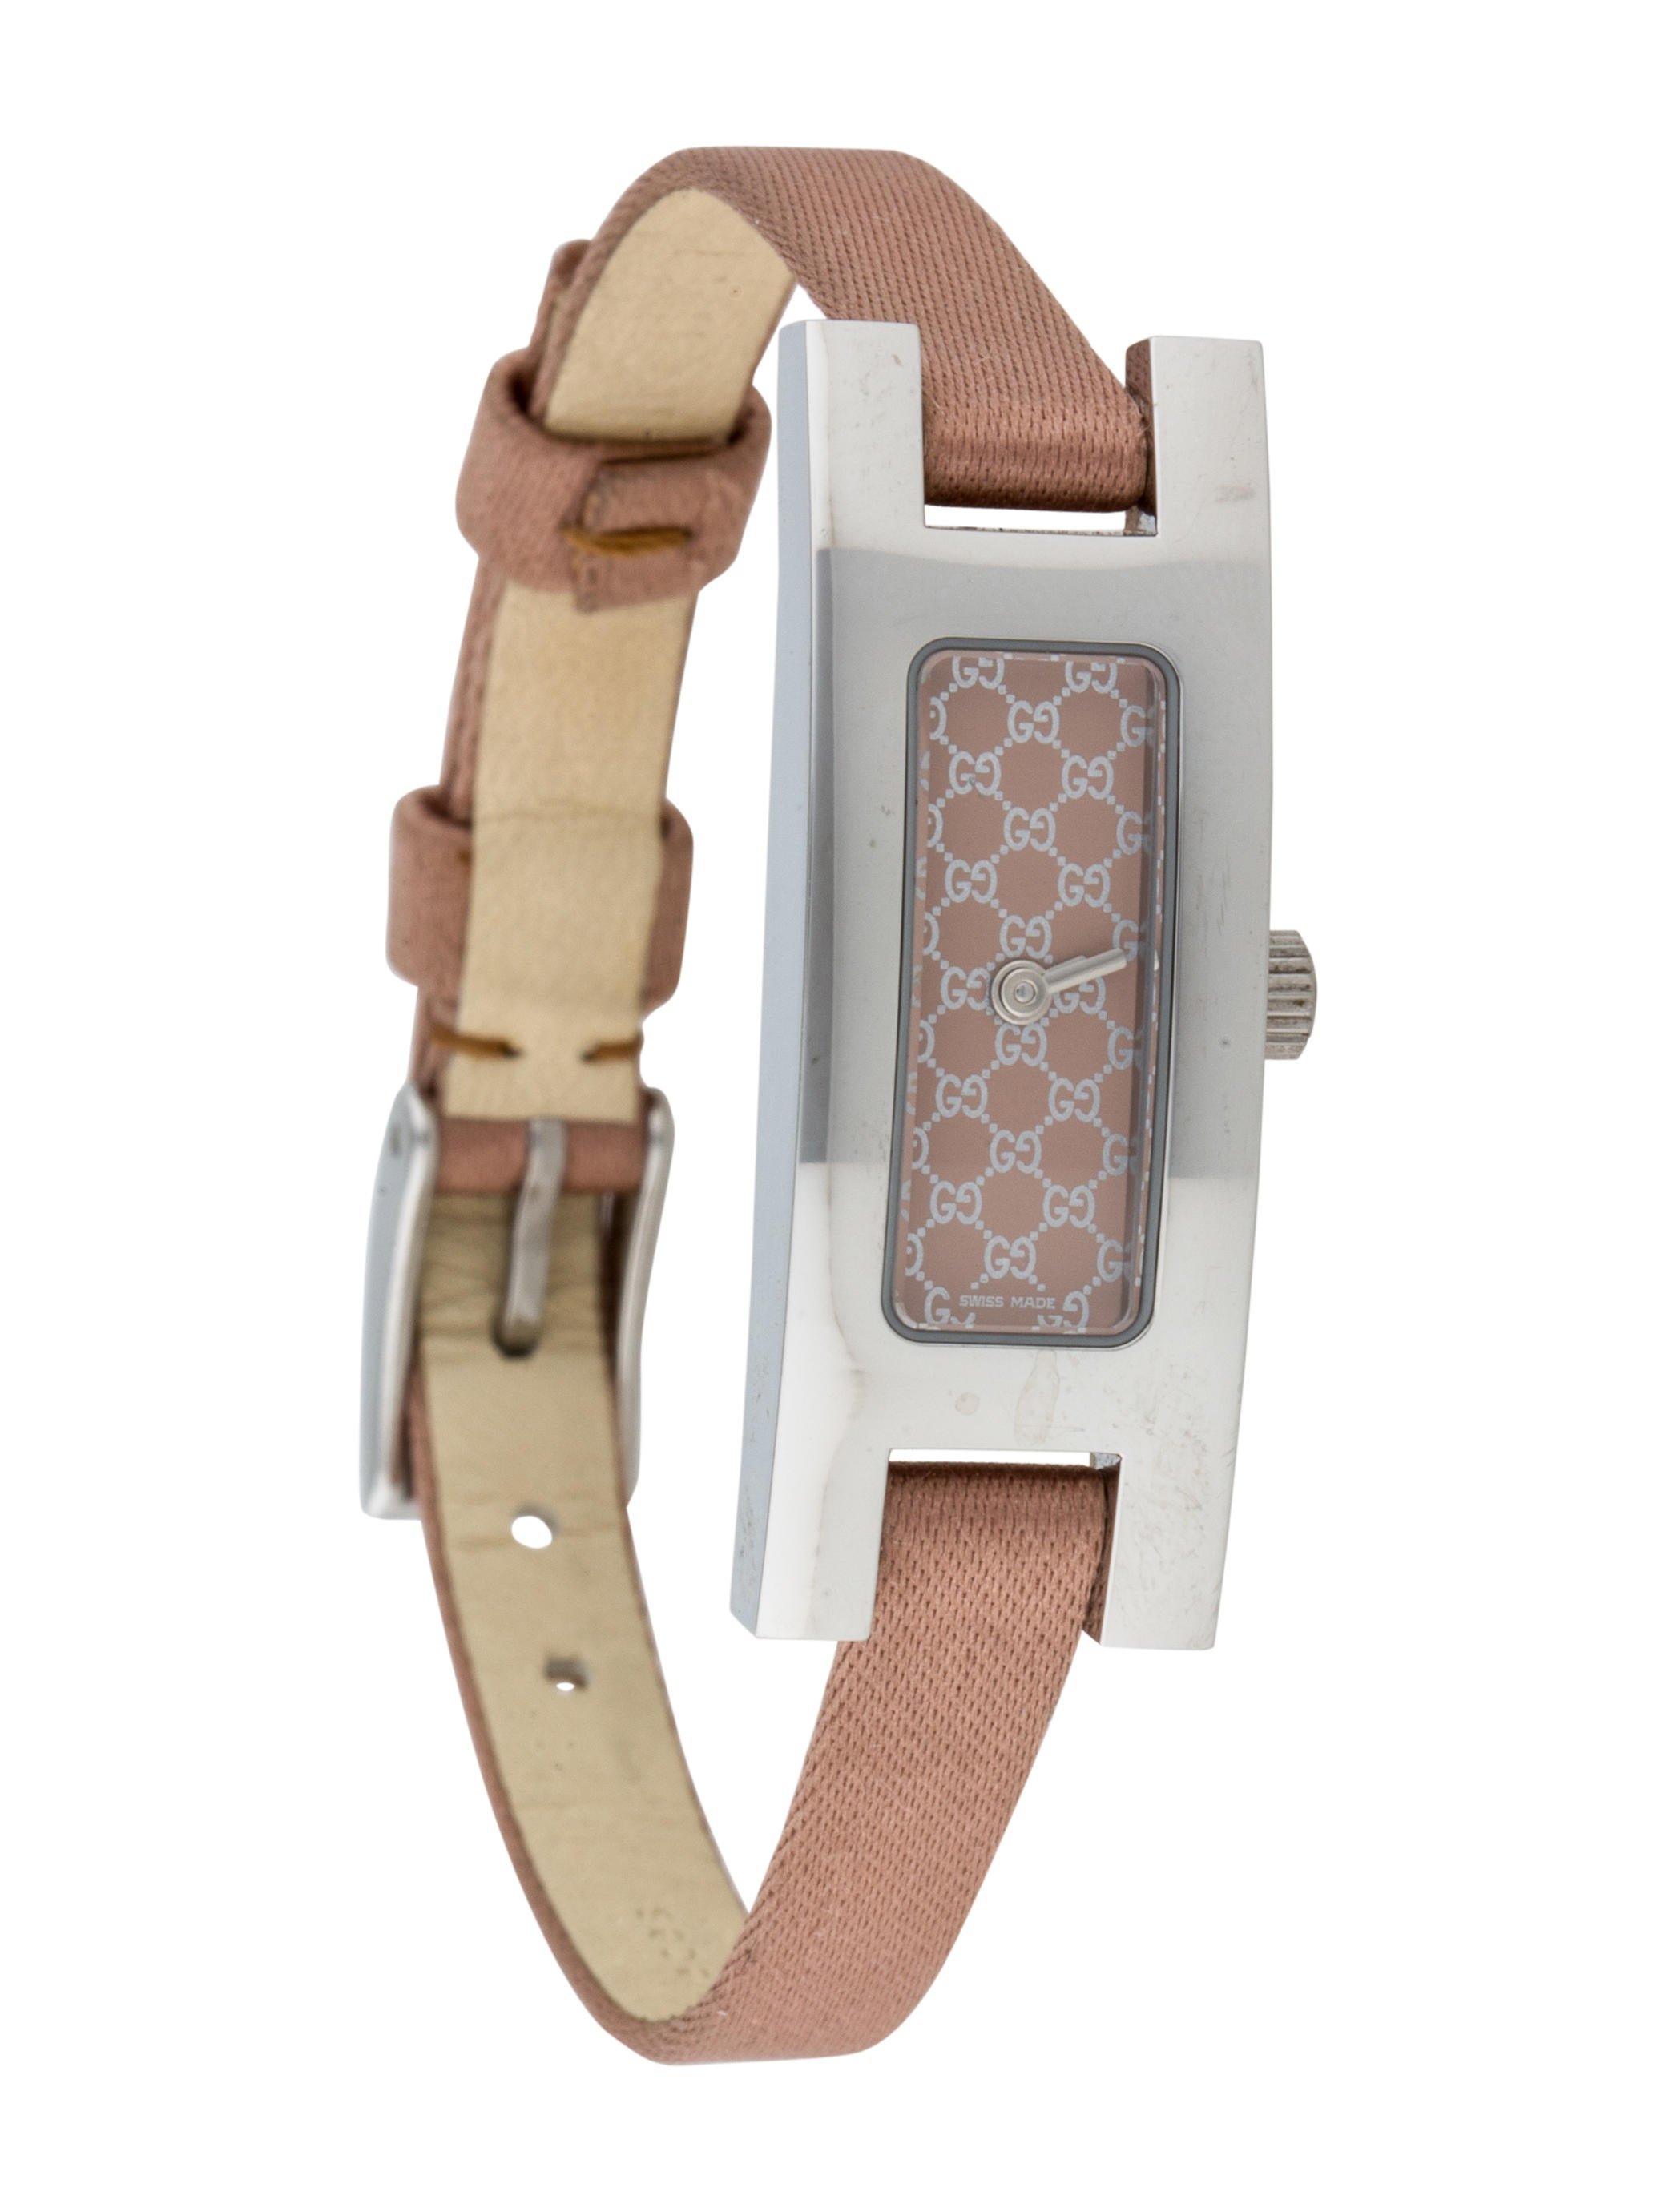 2eb4d17cf Gucci Baguette GG 3900L Watch - Strap - GUC71424   The RealReal